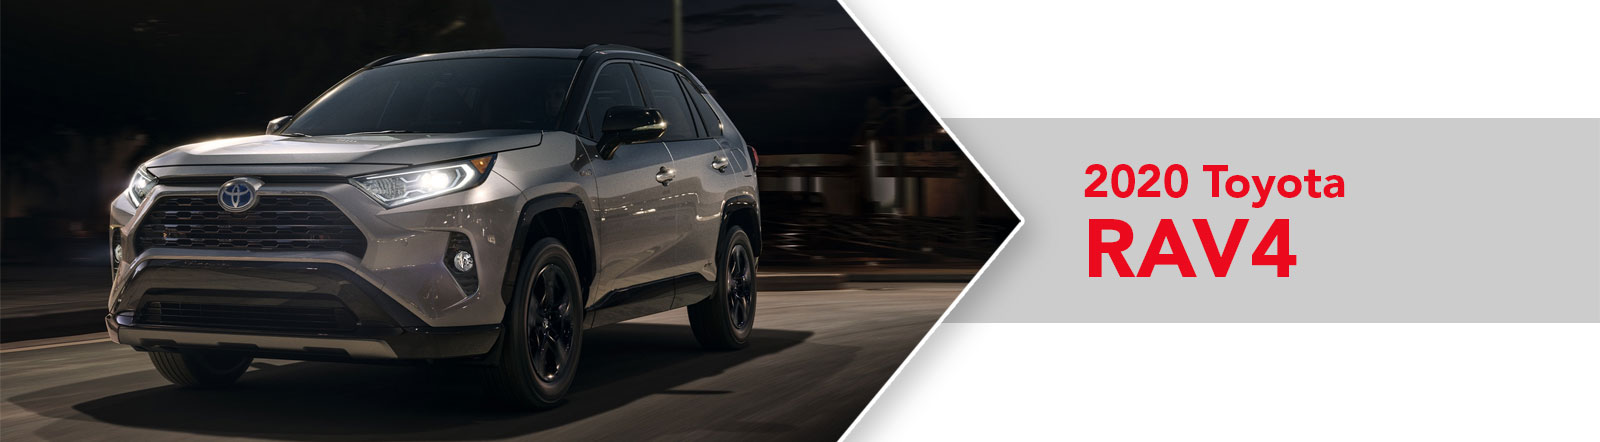 All-New 2020 Toyota RAV4 For Sale in Metairie, LA